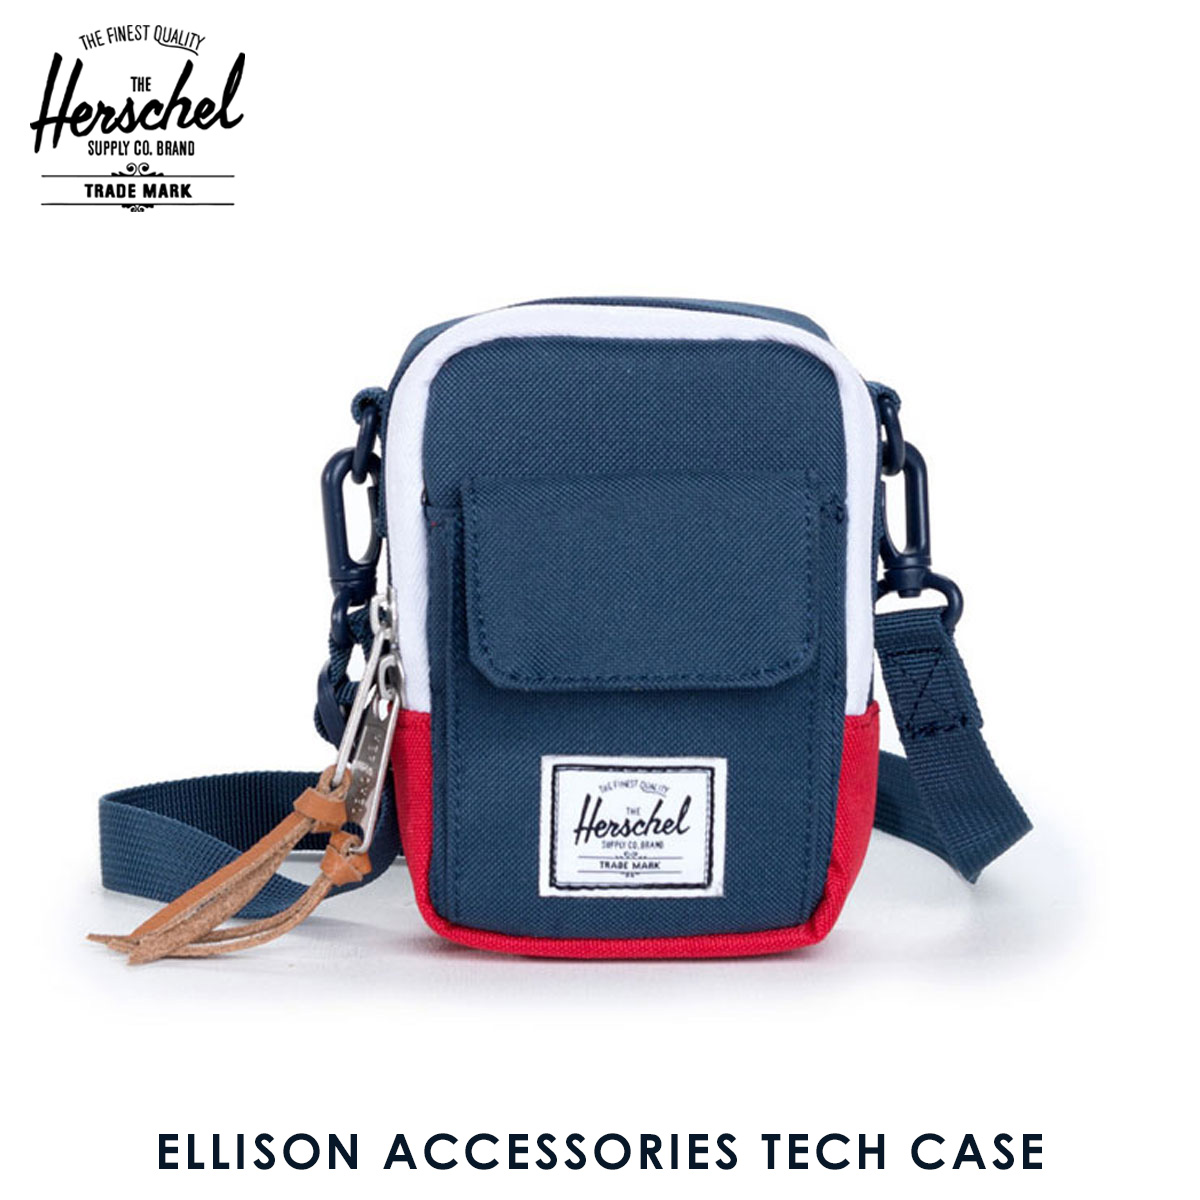 5253e833638 Hershel supply Herschel Supply regular store case Ellison Accessories Tech  Case 10243-00018-OS Navy Red D00S15